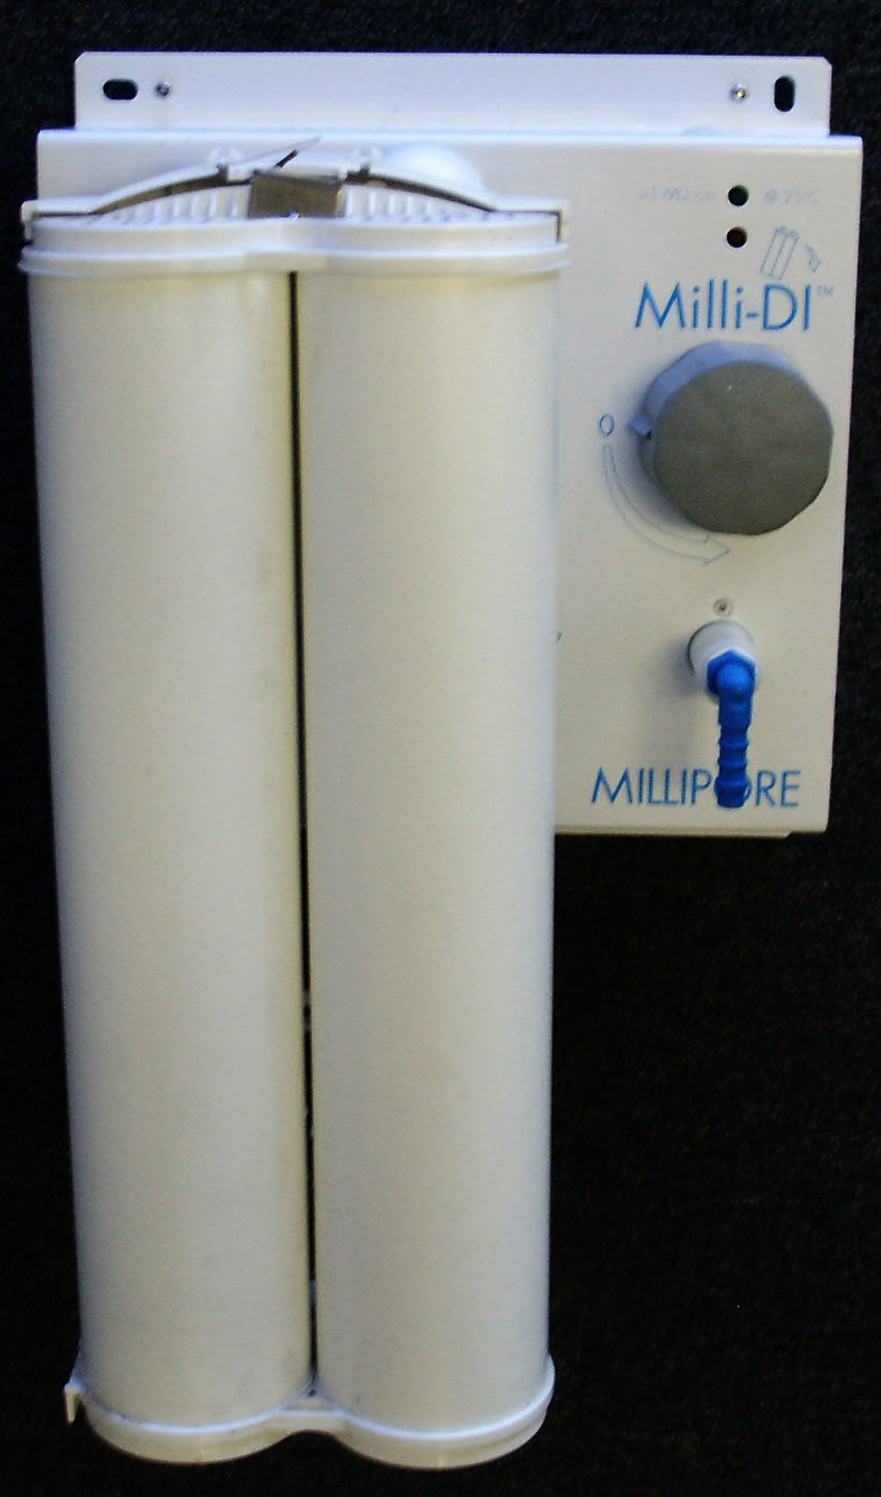 Filters for Millipore Milli-DI Deionization systems